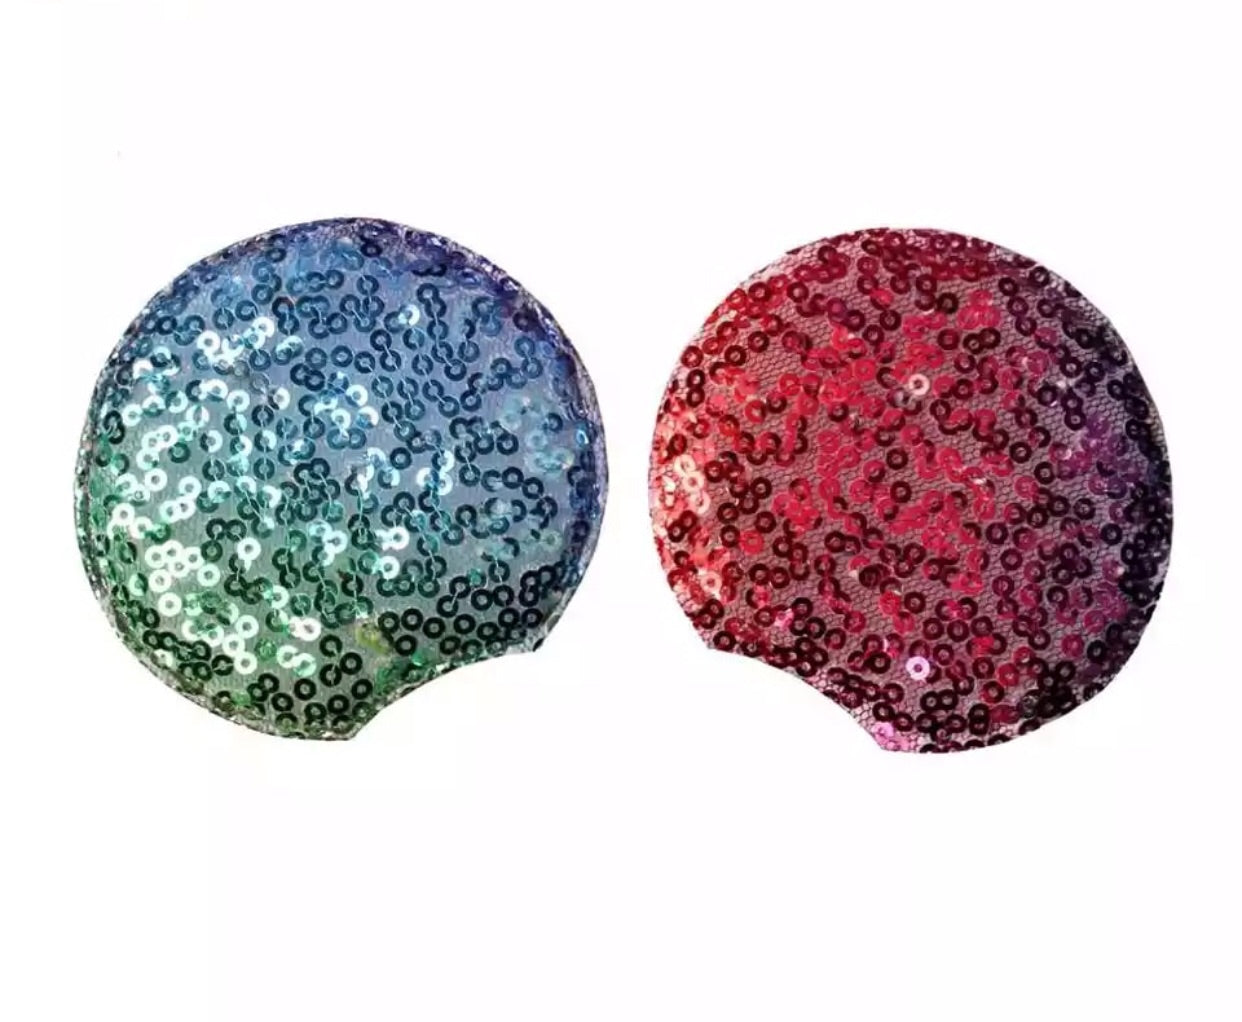 Sequin Padded Mouse Ears - Ombre - shabbyflowers.com